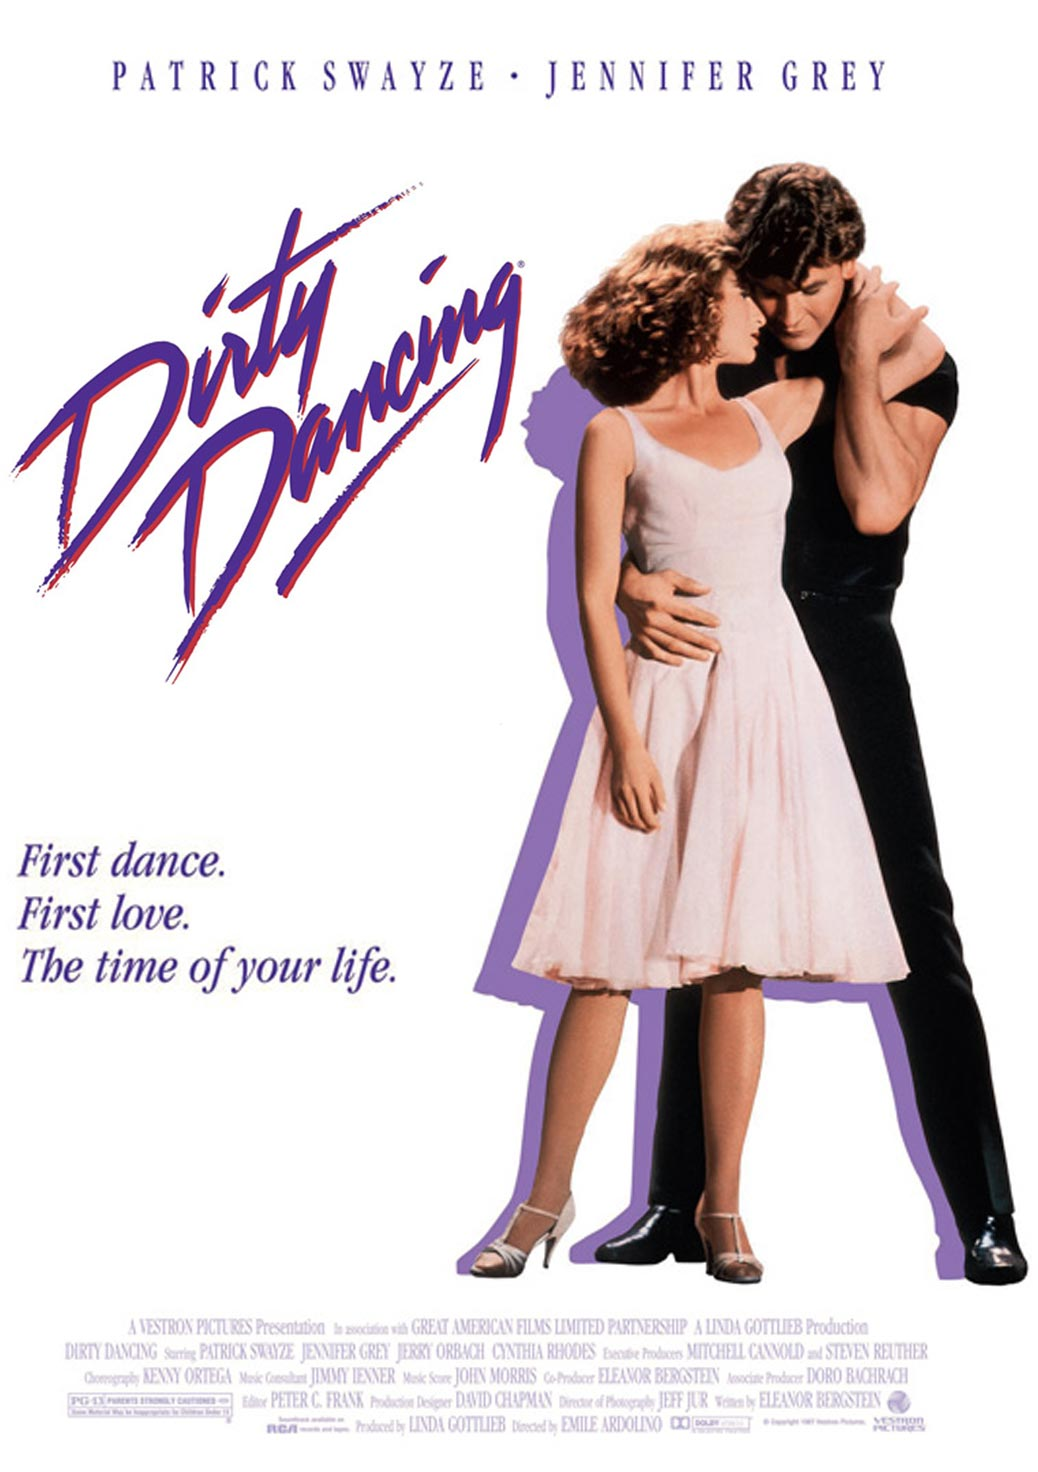 Der Film Dirty Dancing